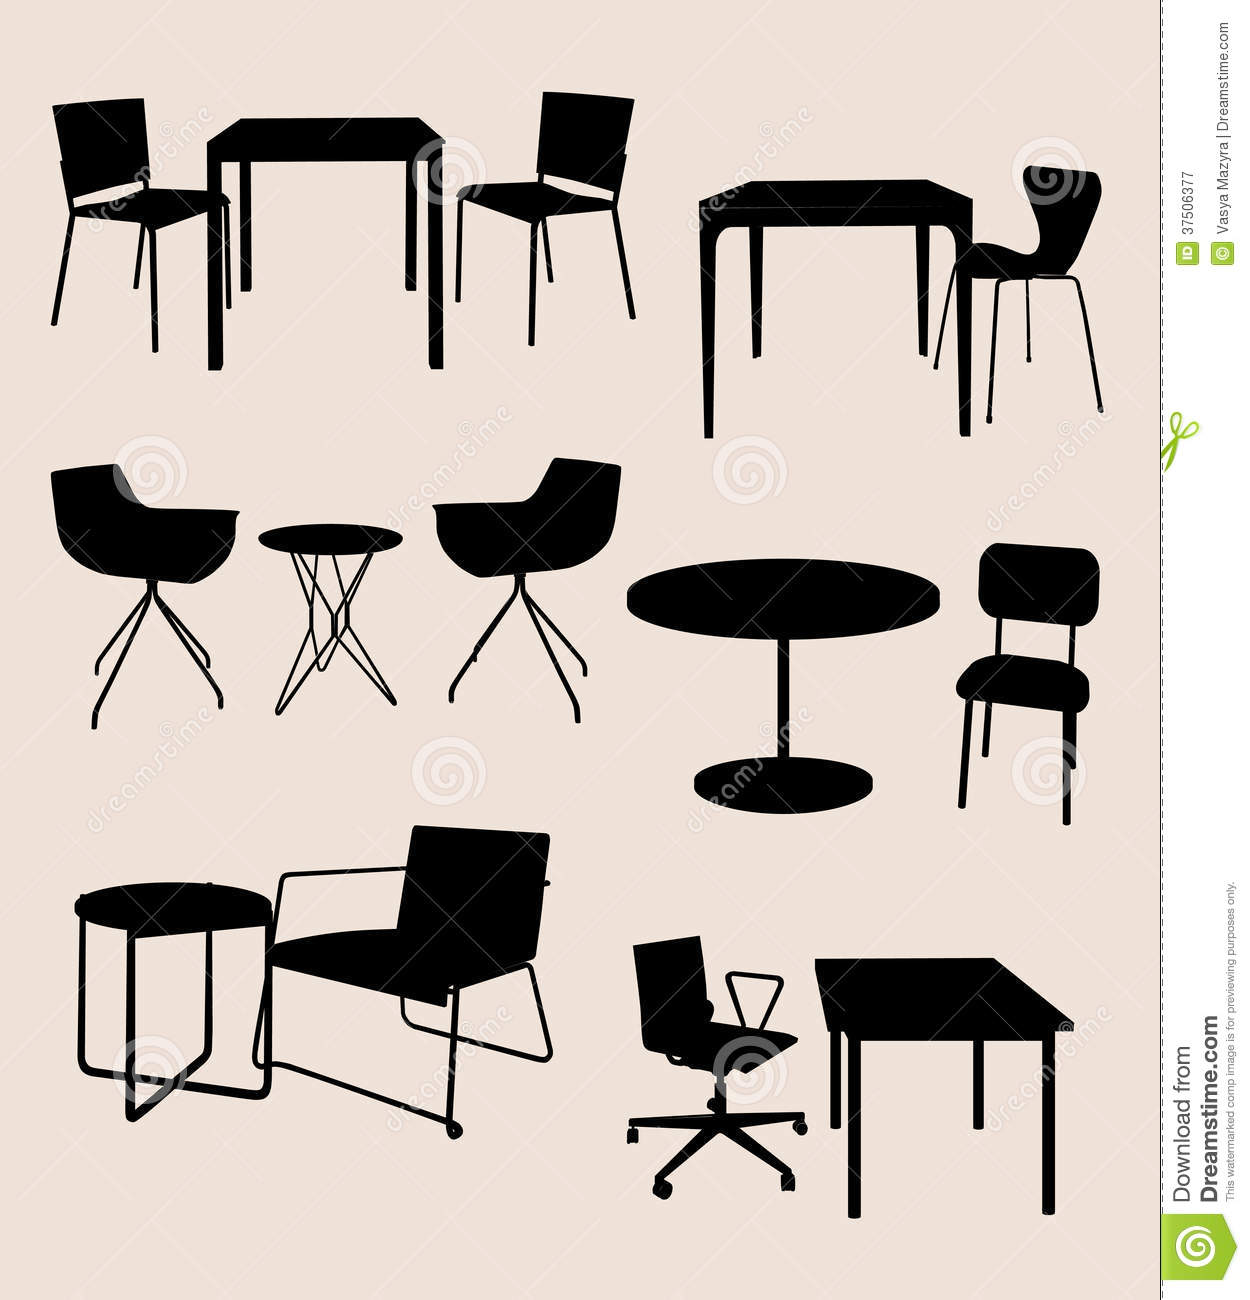 Best Dining Table Illustrations Royalty Free Vector: Set Of Furniture. Tables And Chairs. Silhouette Stock